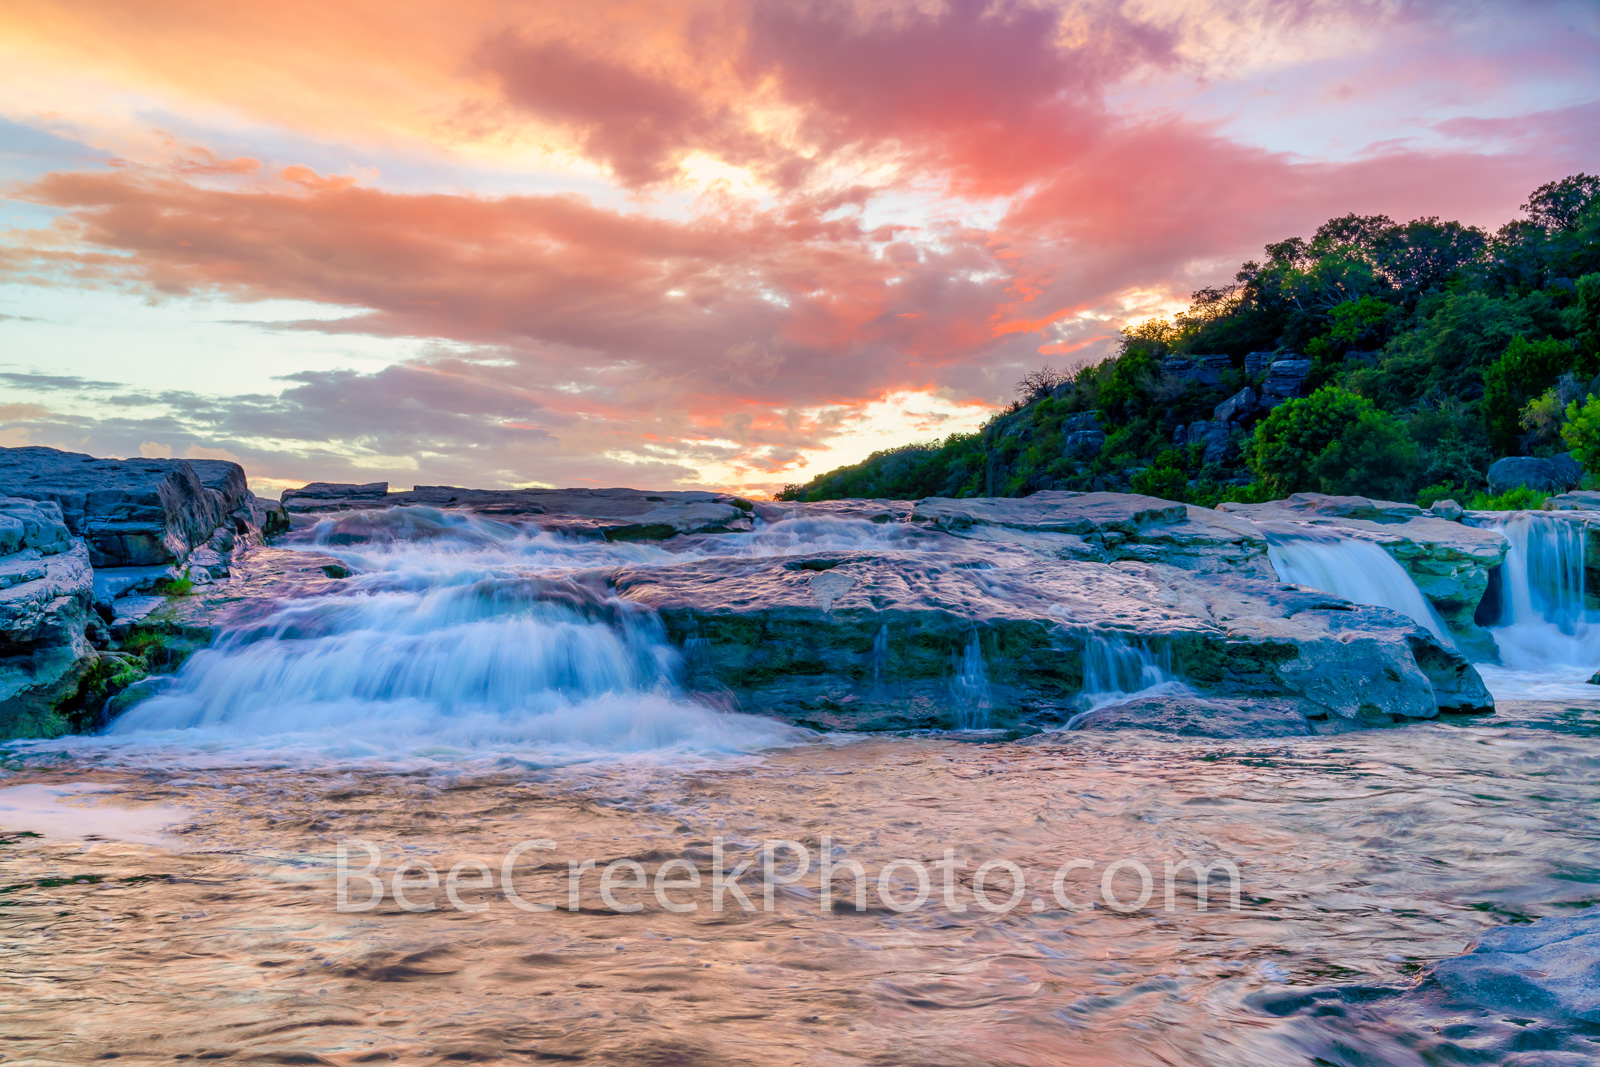 Waterfalls in Texas Hill Country at Dusk -  I went back to the pedernales falls state park for a second time in a week as the...